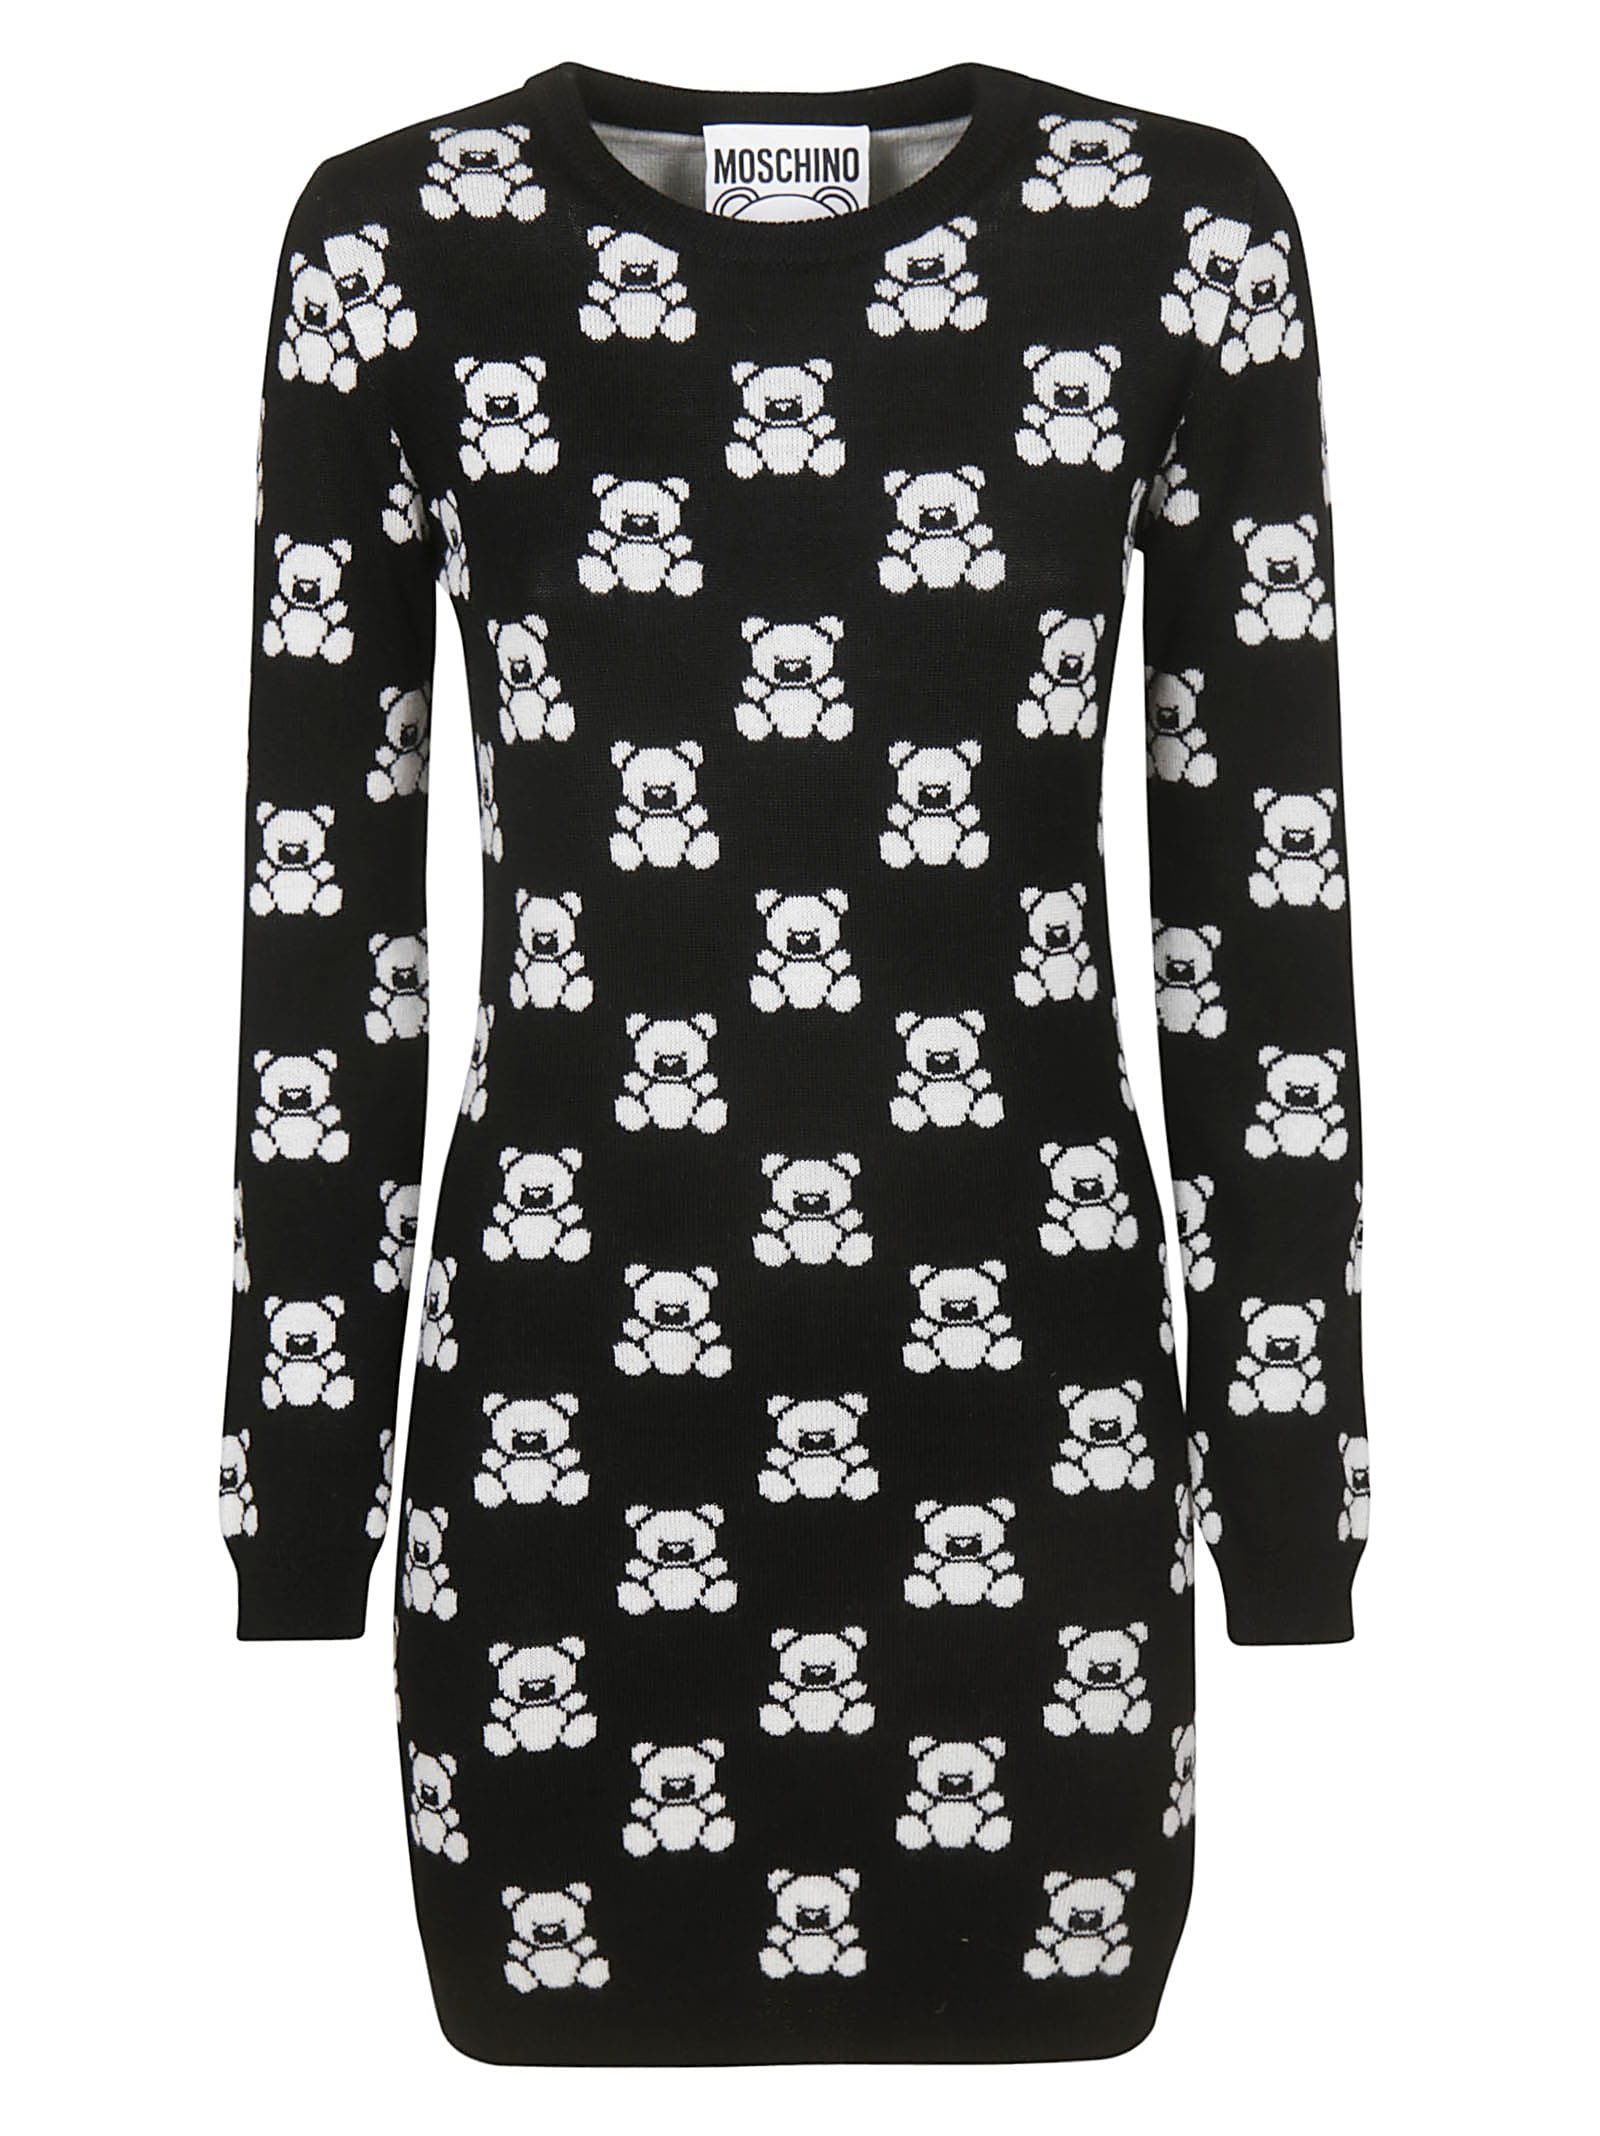 Moschino Teddy Bear Allover Dress